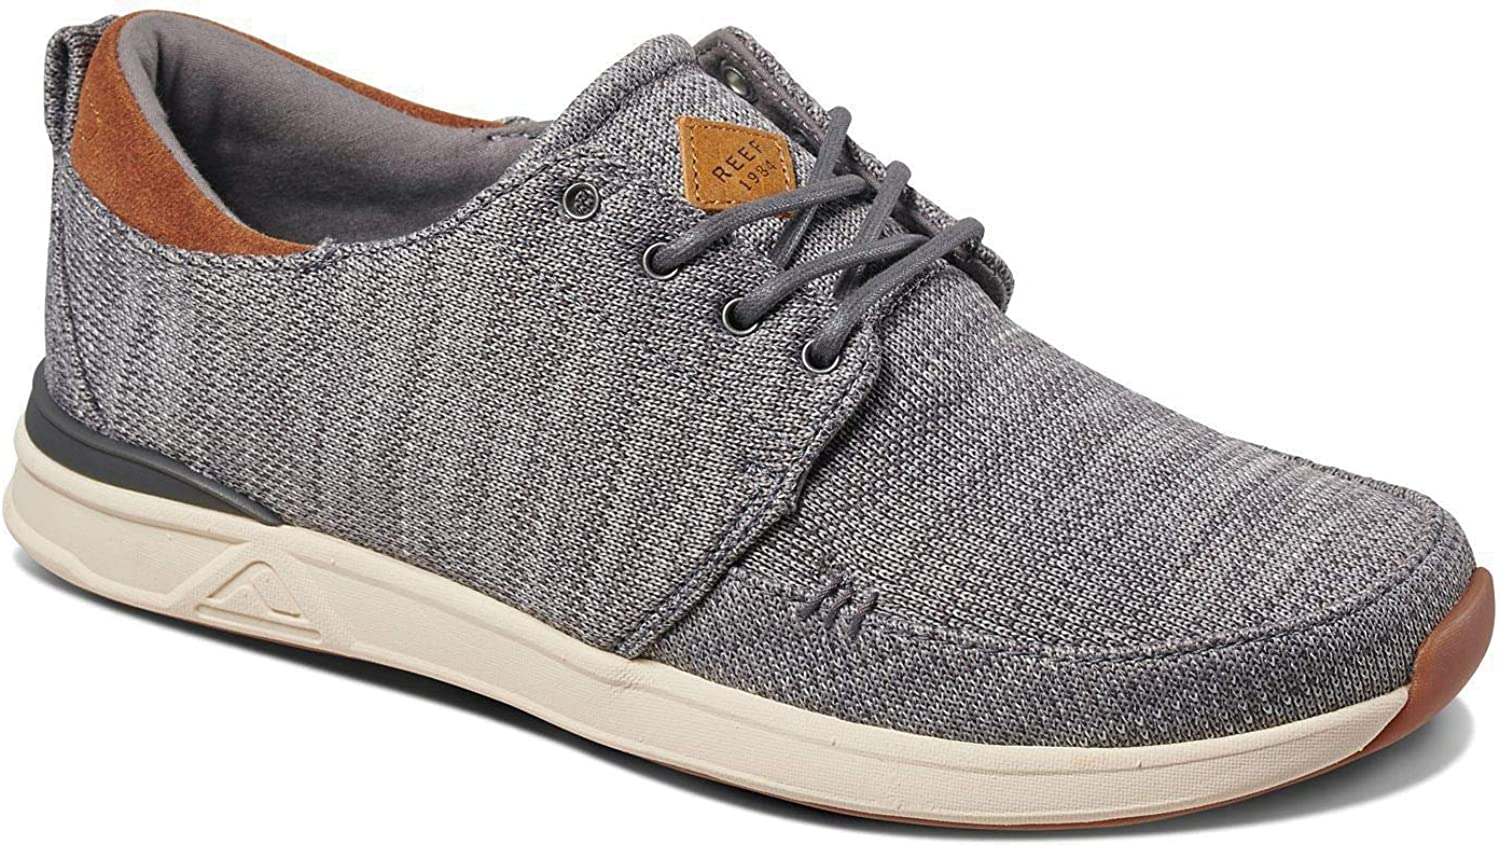 Reef - Mens Rover Low Tx shoes